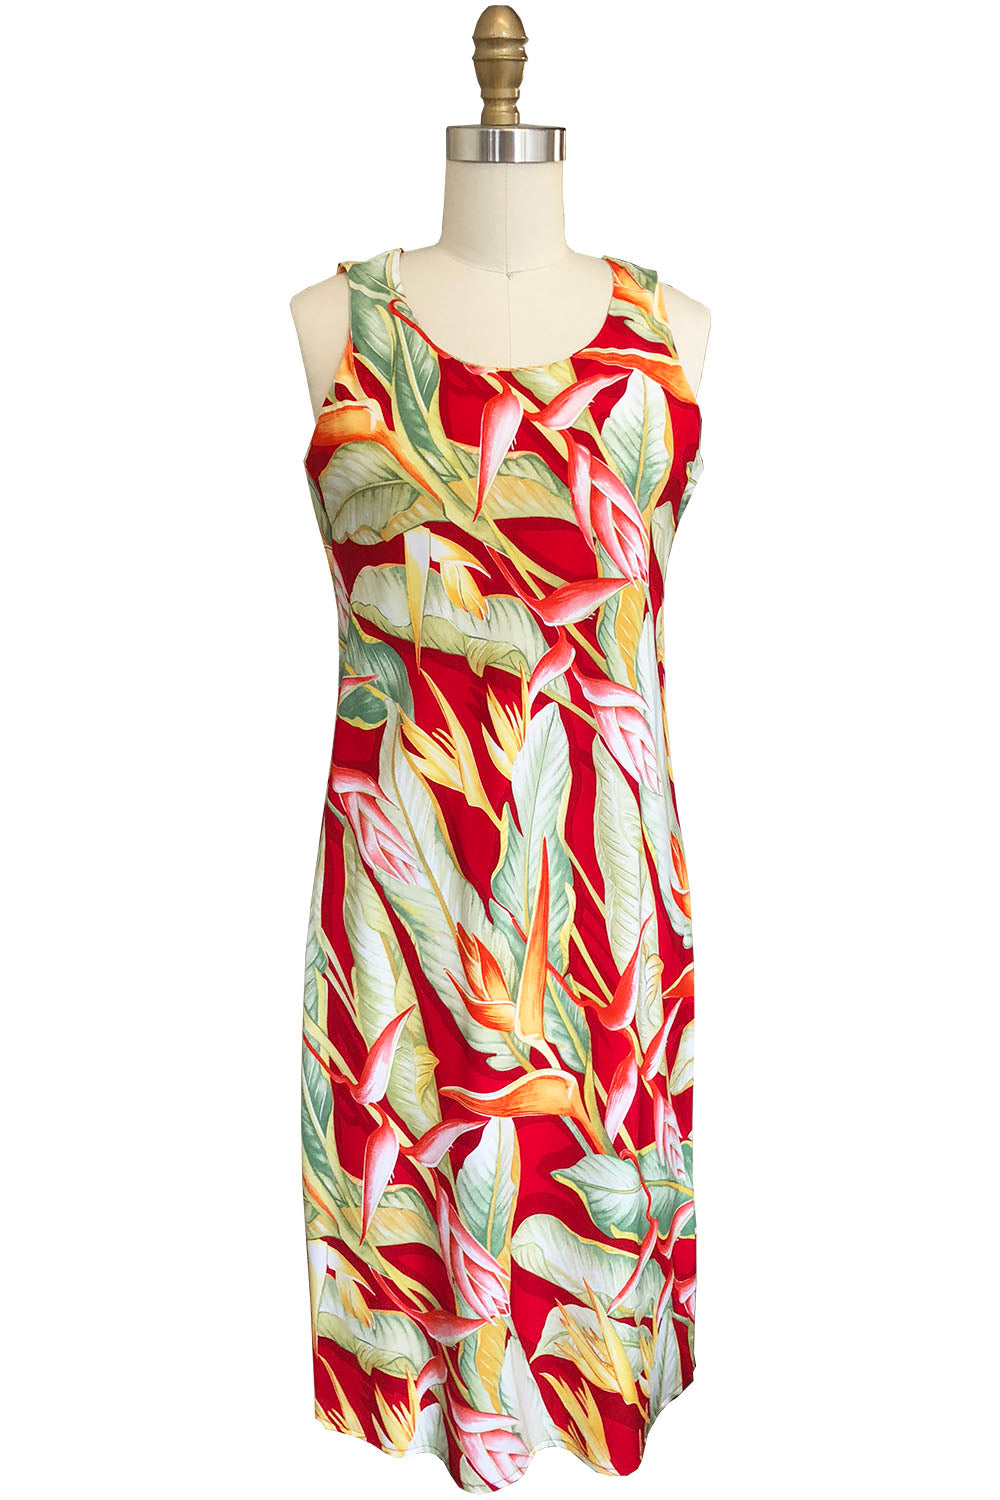 Heliconia Heaven Red Tank Dress